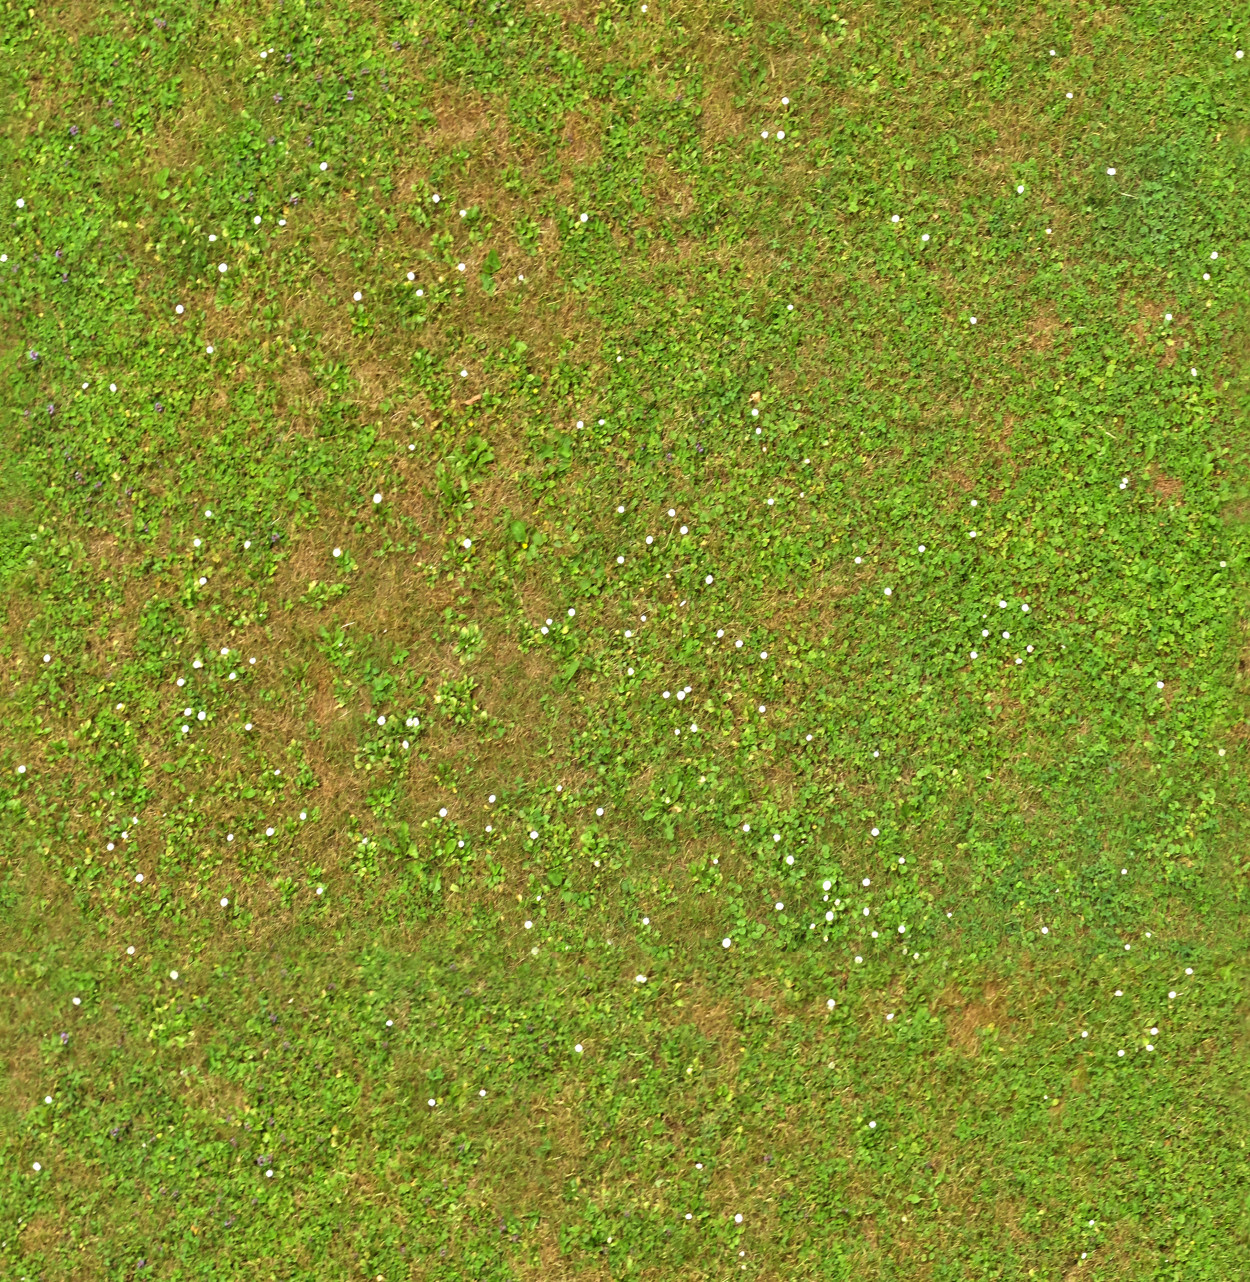 A seamless foliage texture with   arranged in a  pattern